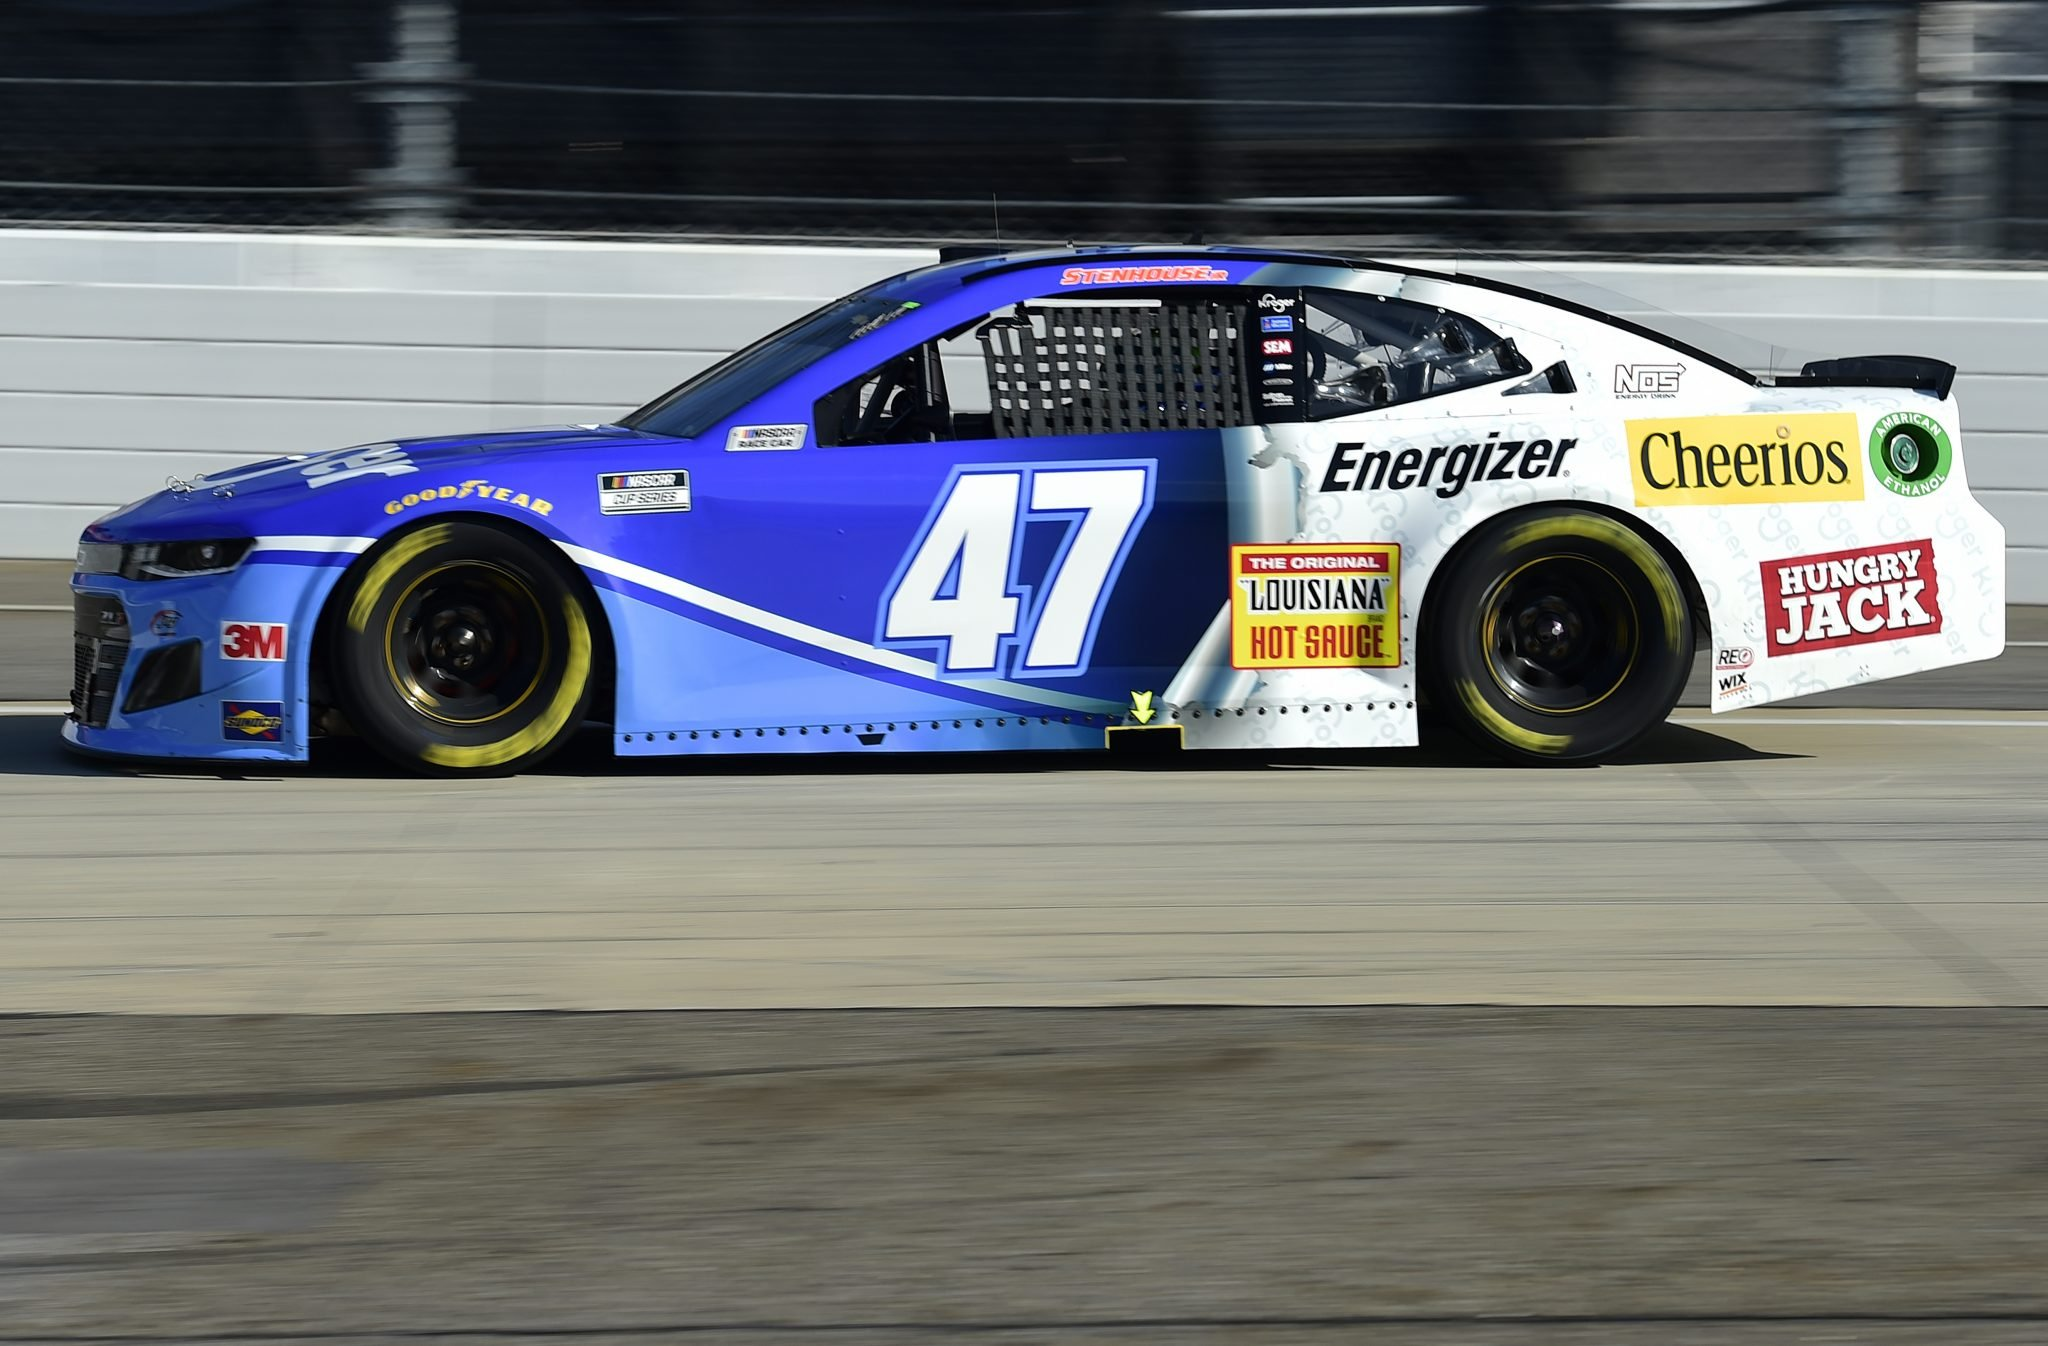 MARTINSVILLE, VIRGINIA - NOVEMBER 01: Ricky Stenhouse Jr., driver of the #47 Kroger Chevrolet, drives during the NASCAR Cup Series Xfinity 500 at Martinsville Speedway on November 01, 2020 in Martinsville, Virginia. (Photo by Jared C. Tilton/Getty Images) | Getty Images